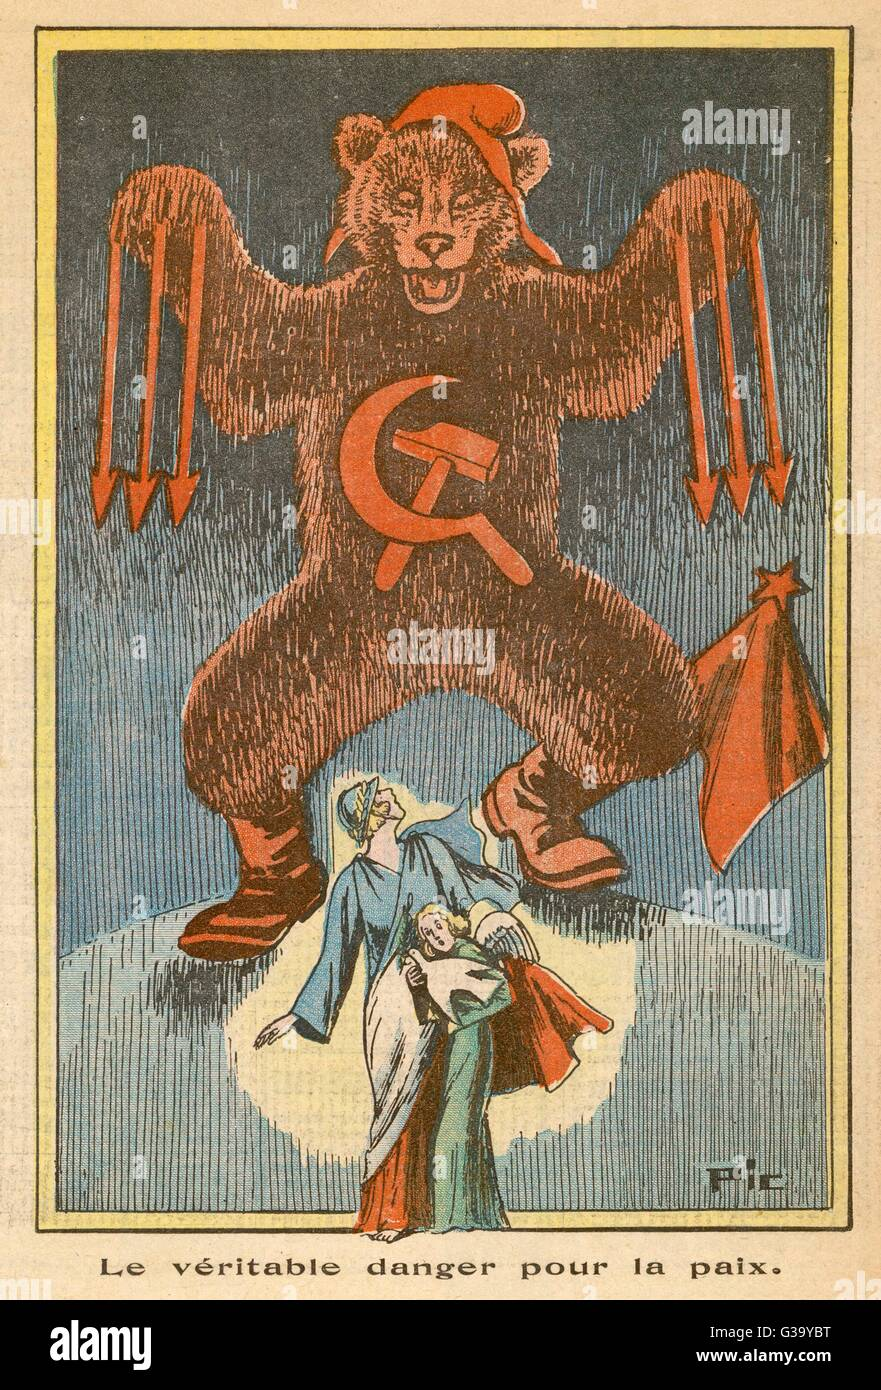 Soviet communism - the real  threat to peace (from the  point of view of a right-wing  Catholic journal)       Date: - Stock Image